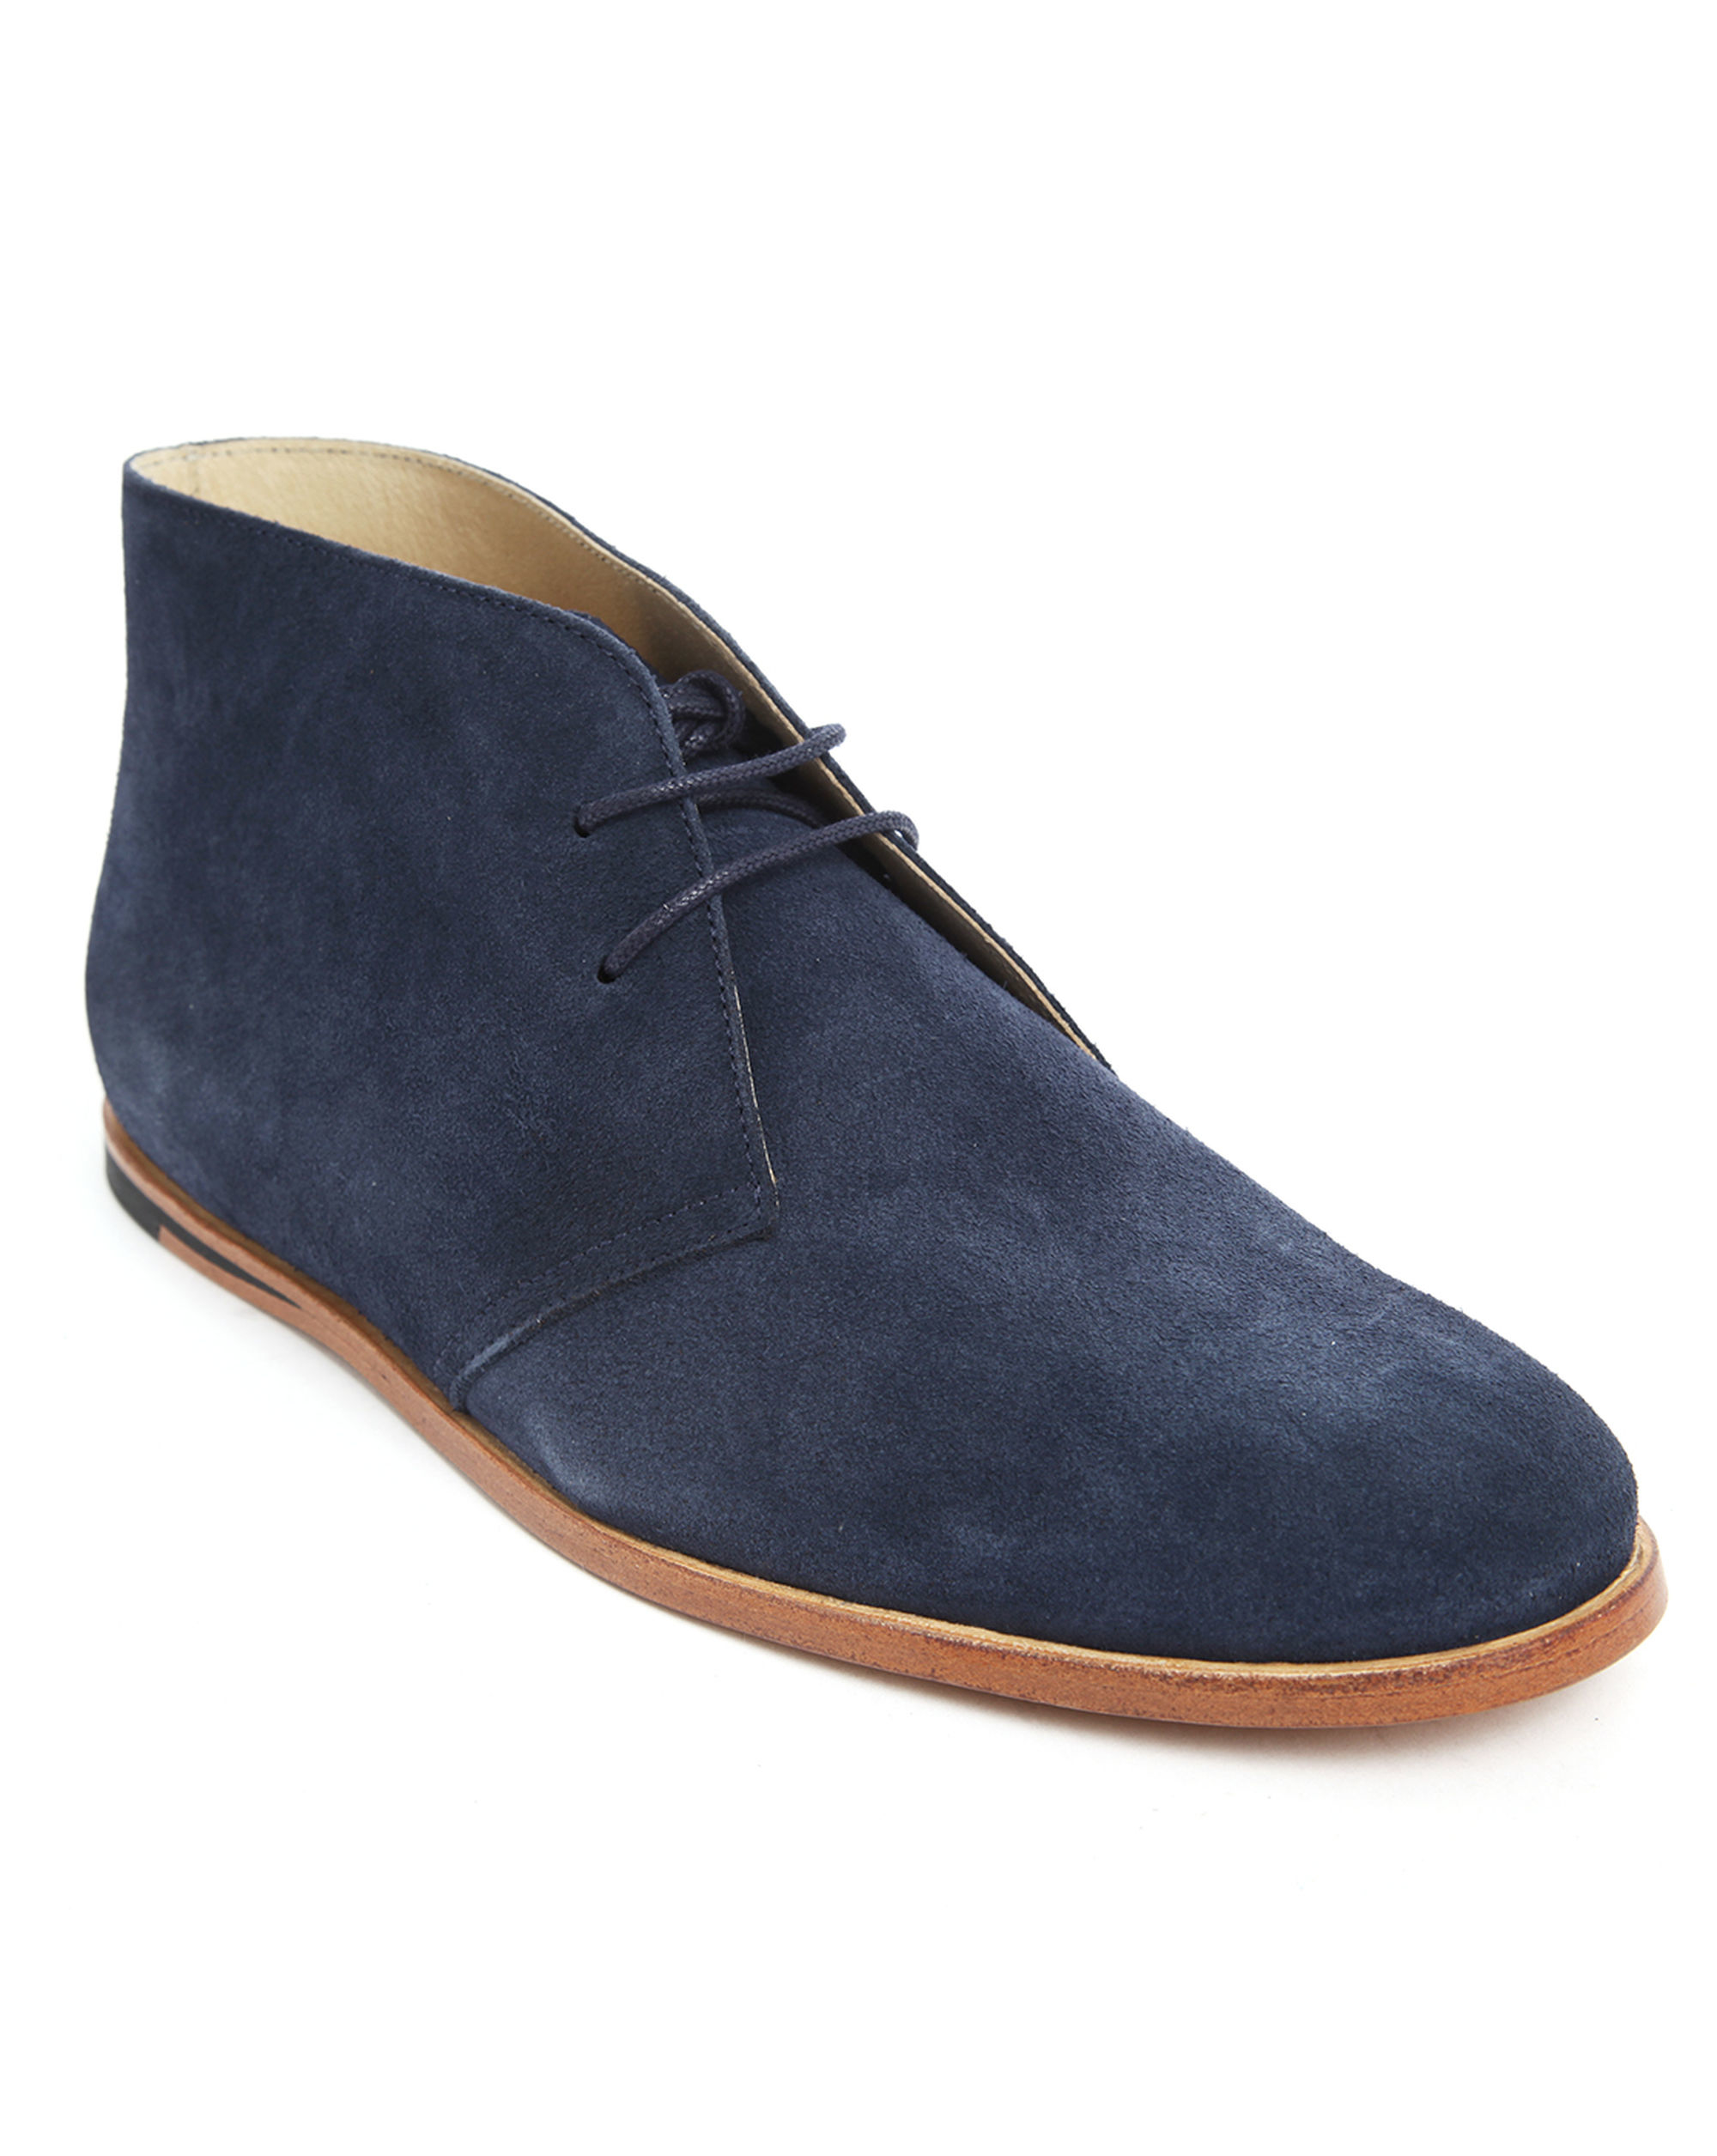 Desert CLARKS Men's Boot Navy Blue Chukka Desert CLARKS Chukka Men's Navy Boot Blue If the desired weight is less than , weights below the desired weight are checked in descending order followed by weights above the desired weight in ascending order until a match is found.